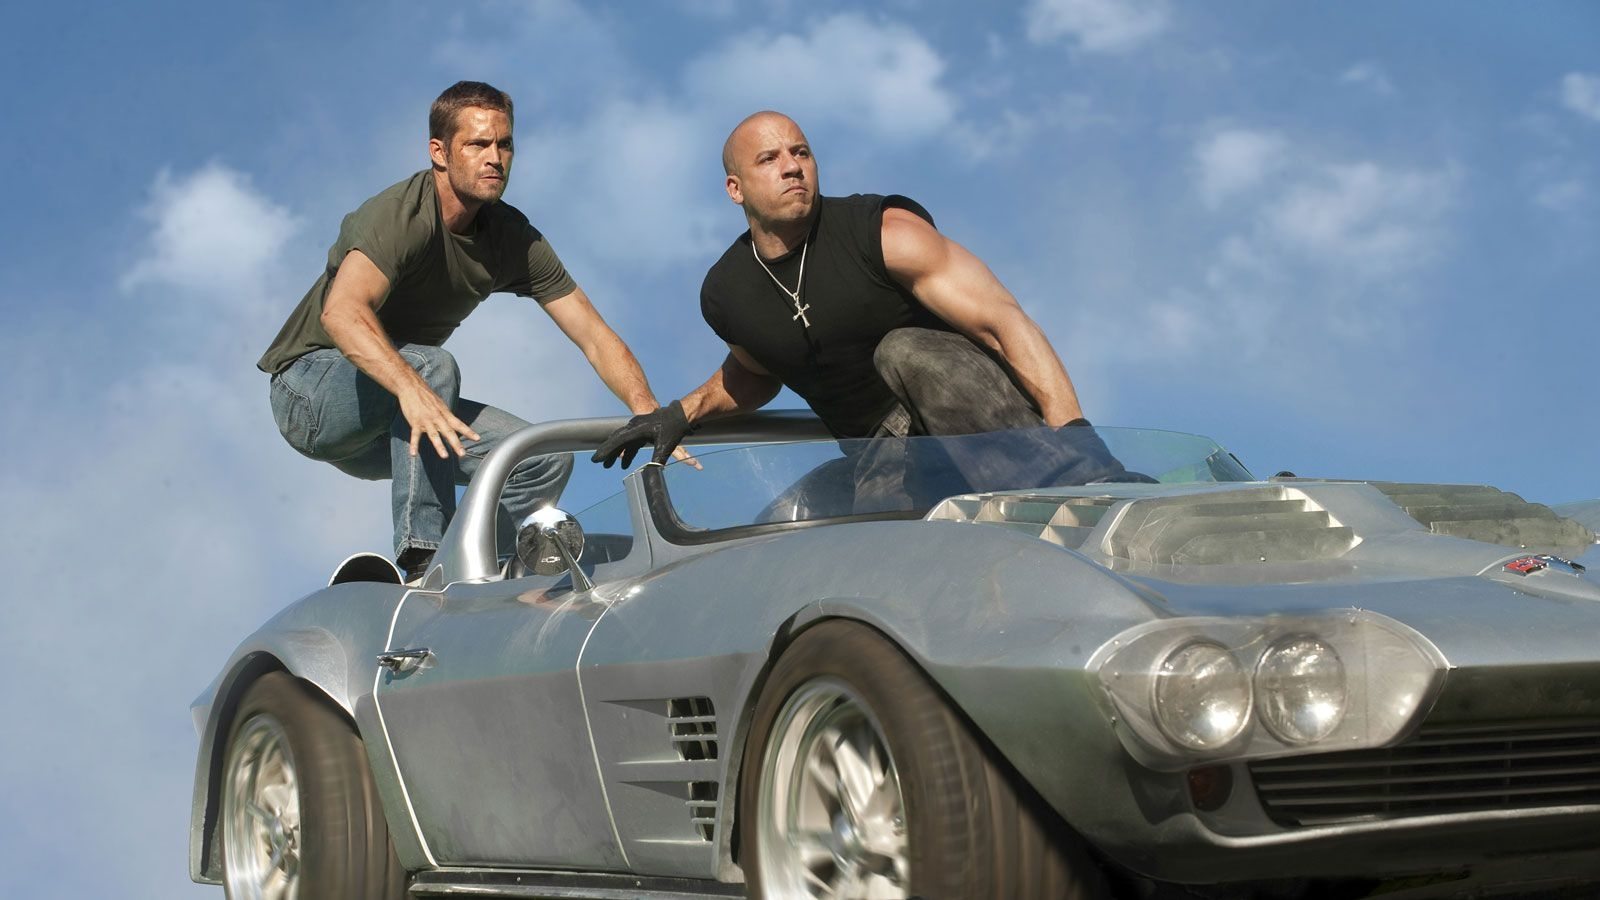 http://1.bp.blogspot.com/-3a7X0ZX9MB8/TeGTnIG32qI/AAAAAAAAAAQ/S7du0rw2GxY/s1600/Fast_Five_Vin_Diesel_and_Paul_Walker_Wallpaper_1600x900_7016.jpg